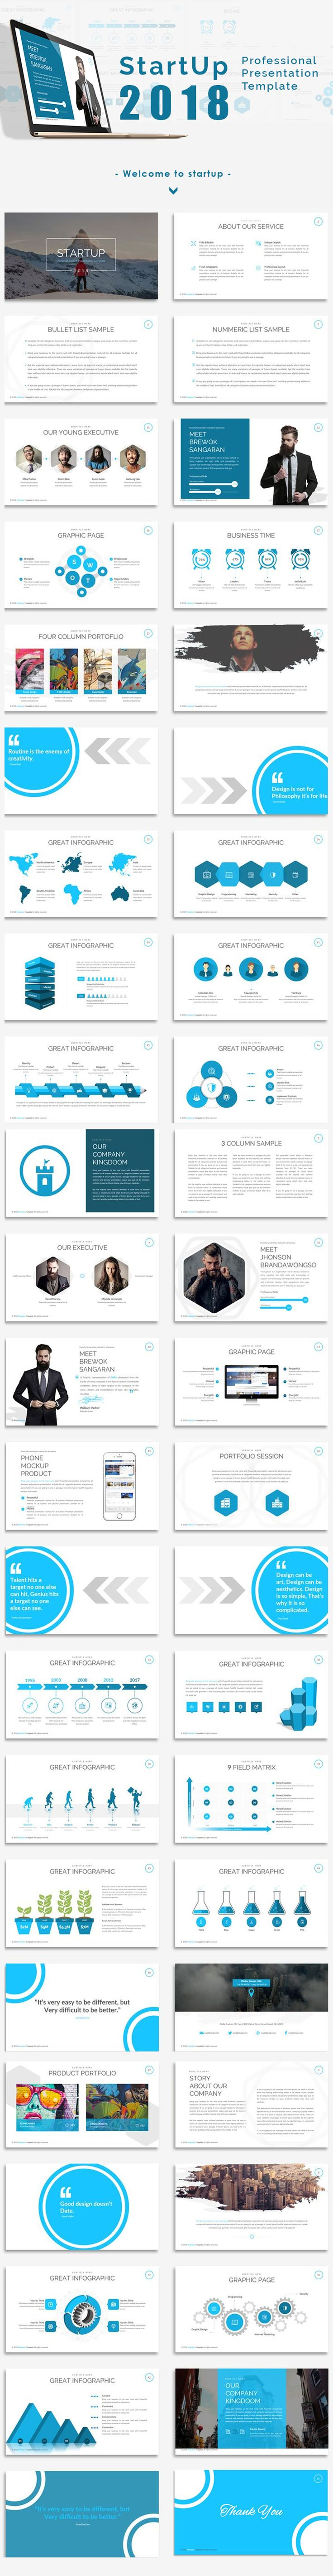 Start Up 2018 - Presentation PowerPoint Template